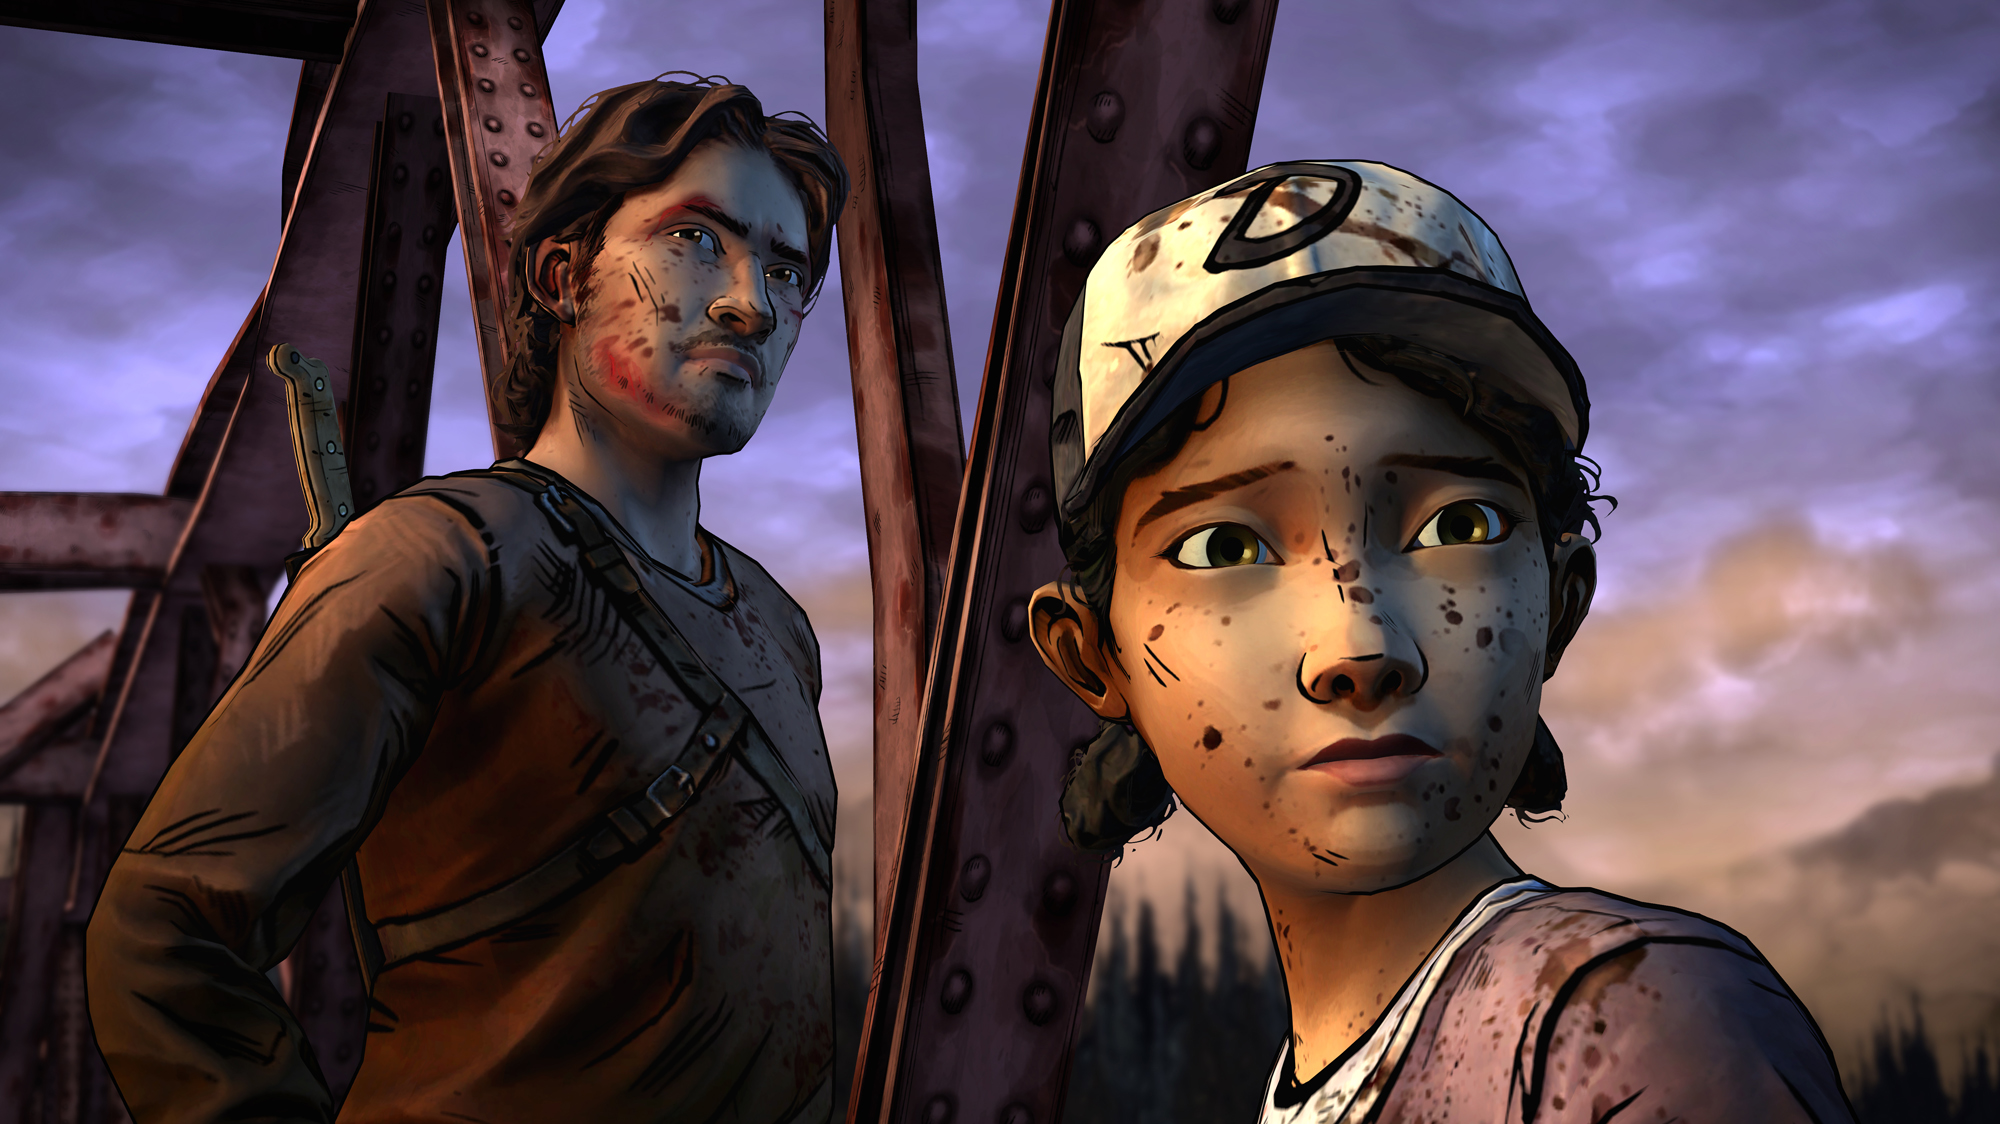 The Walking Dead Season 2 Episode 2 coming tomorrow